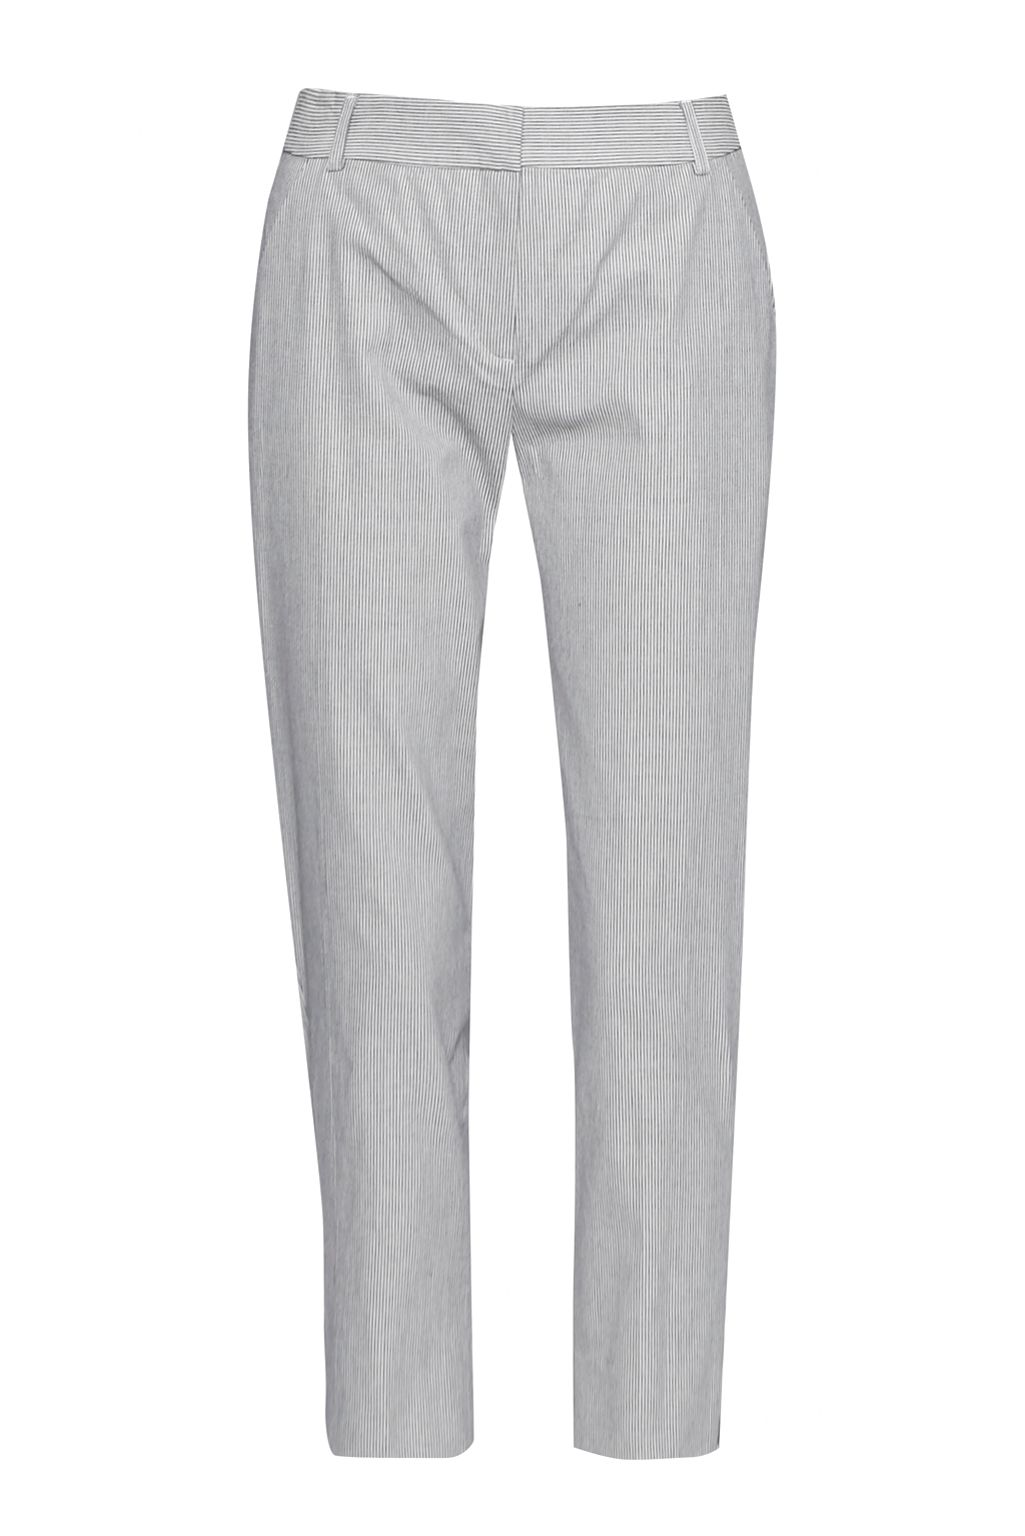 Great Plains Padstow Stripe Stretch Cigarette Trousers, Blue